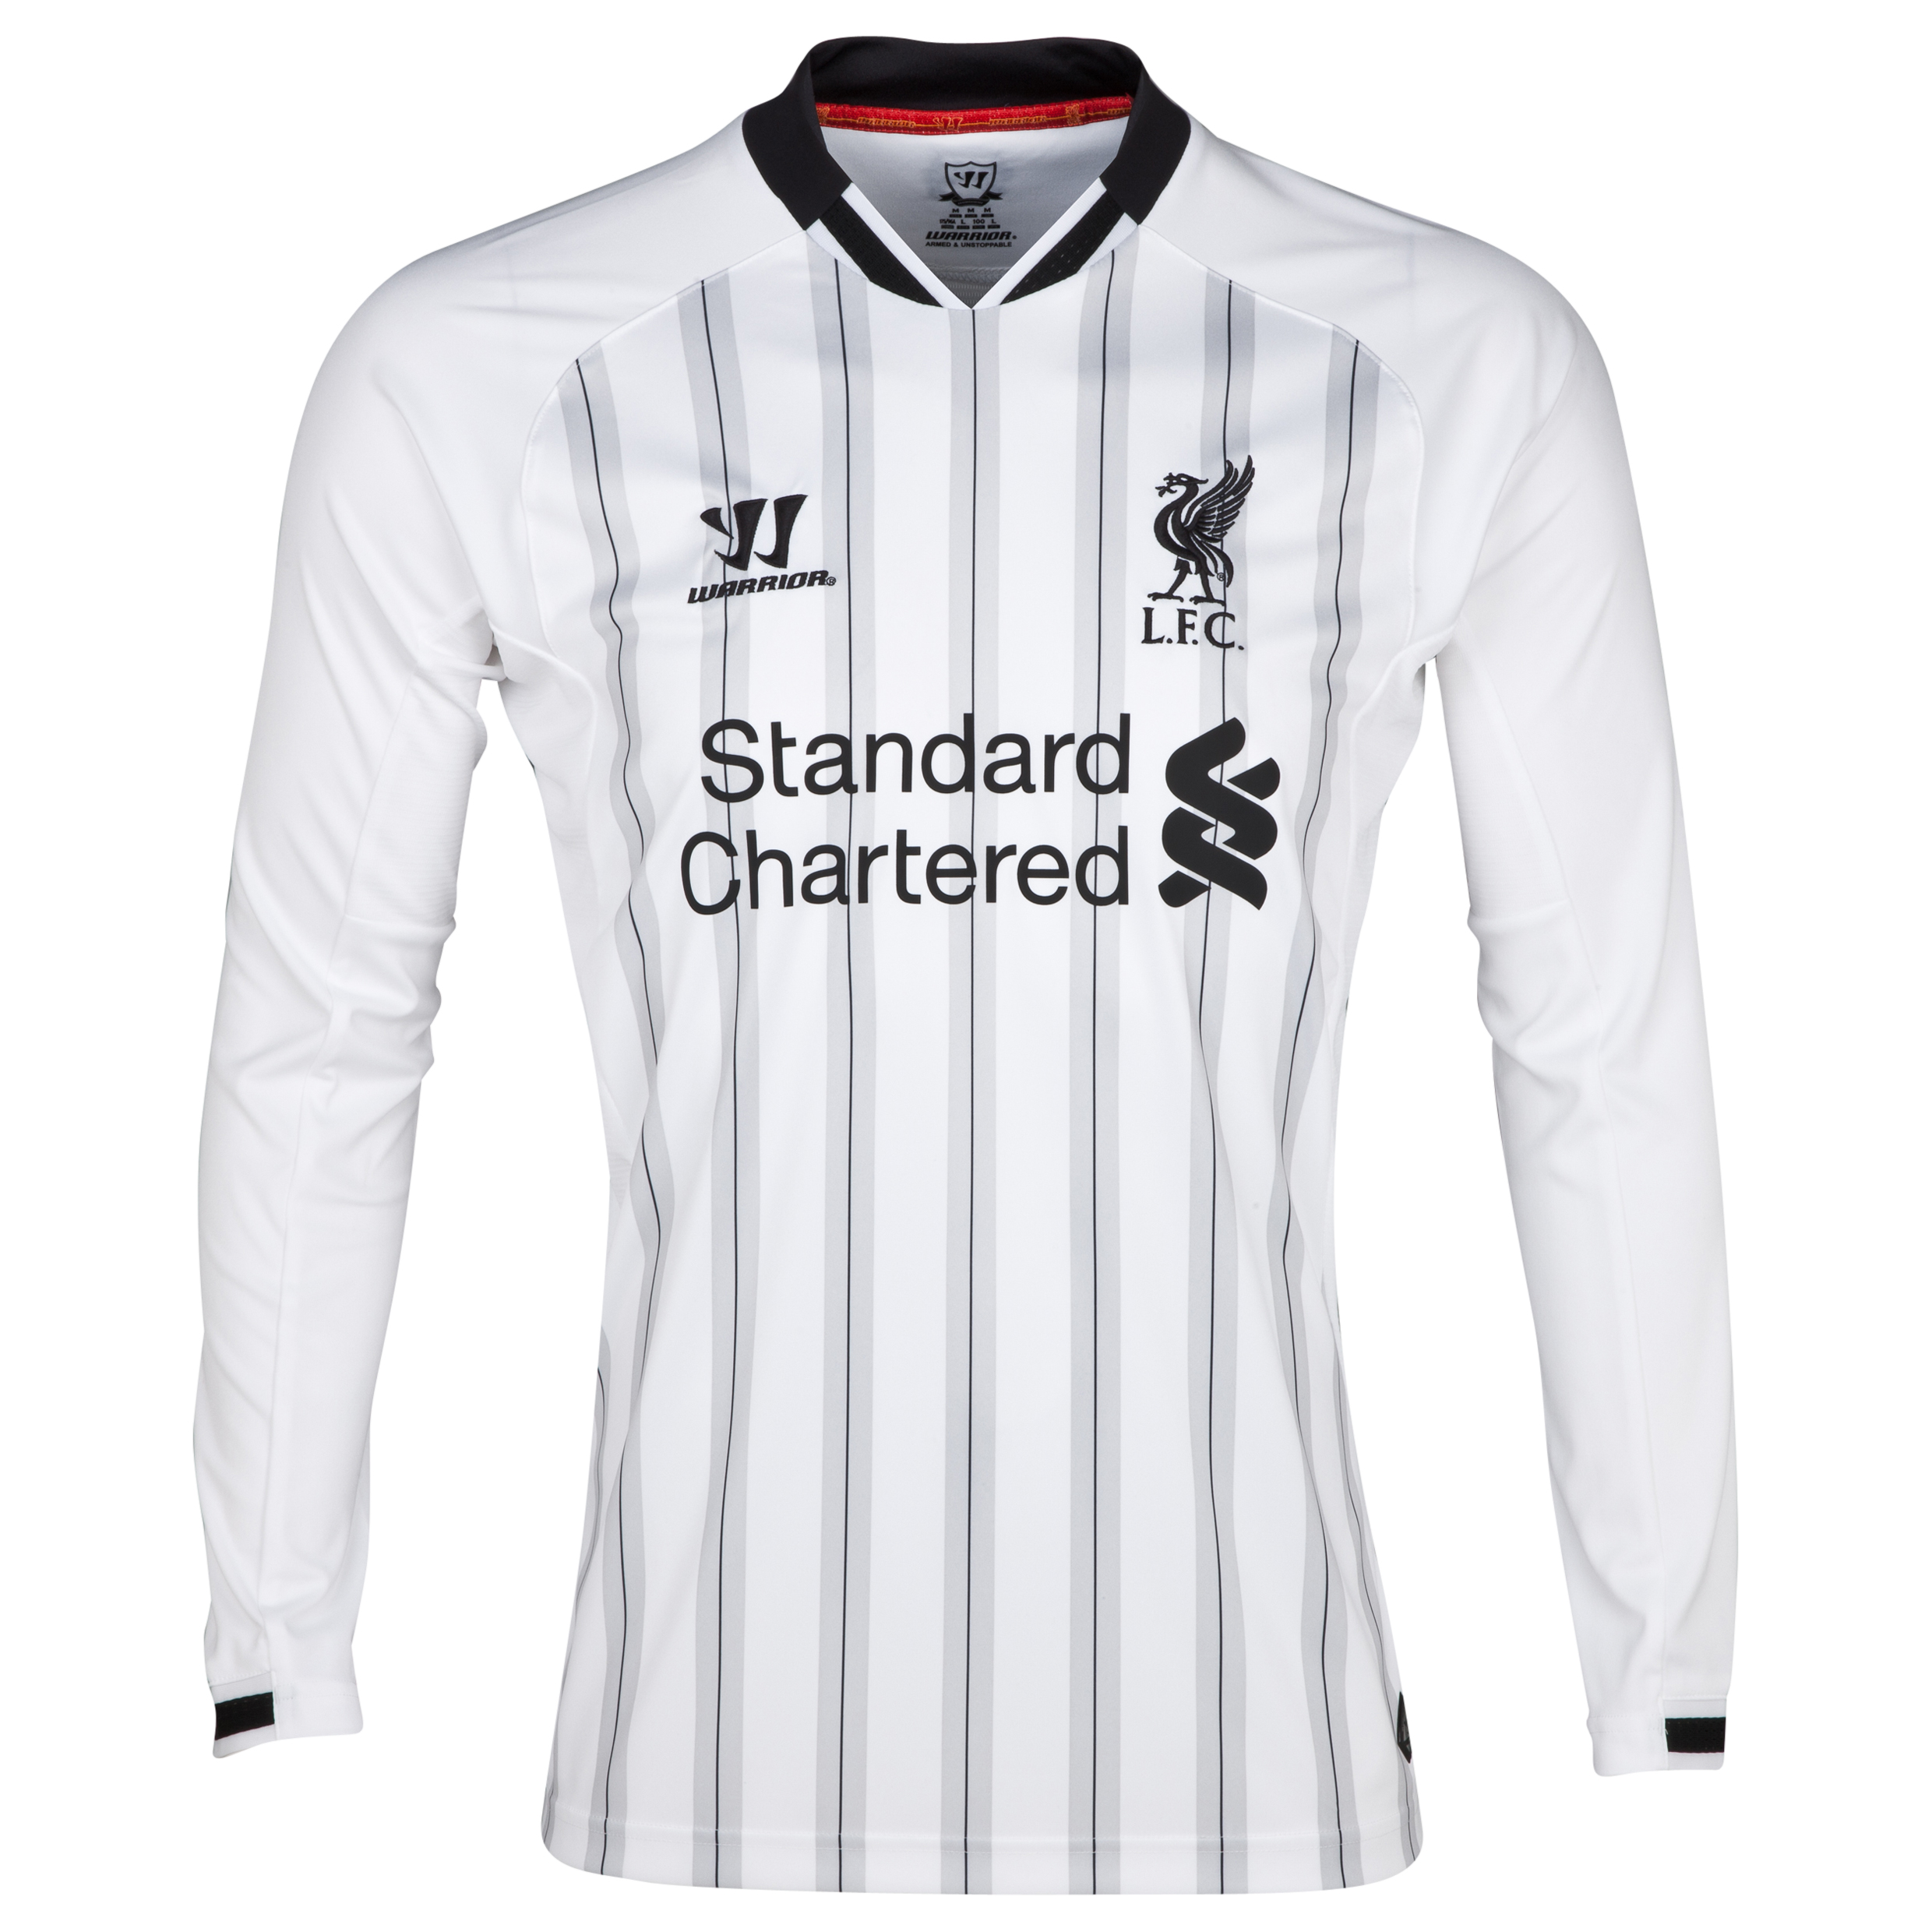 Buy Liverpool Home Goalkeeper Kit 2013/14 -Long Sleeve